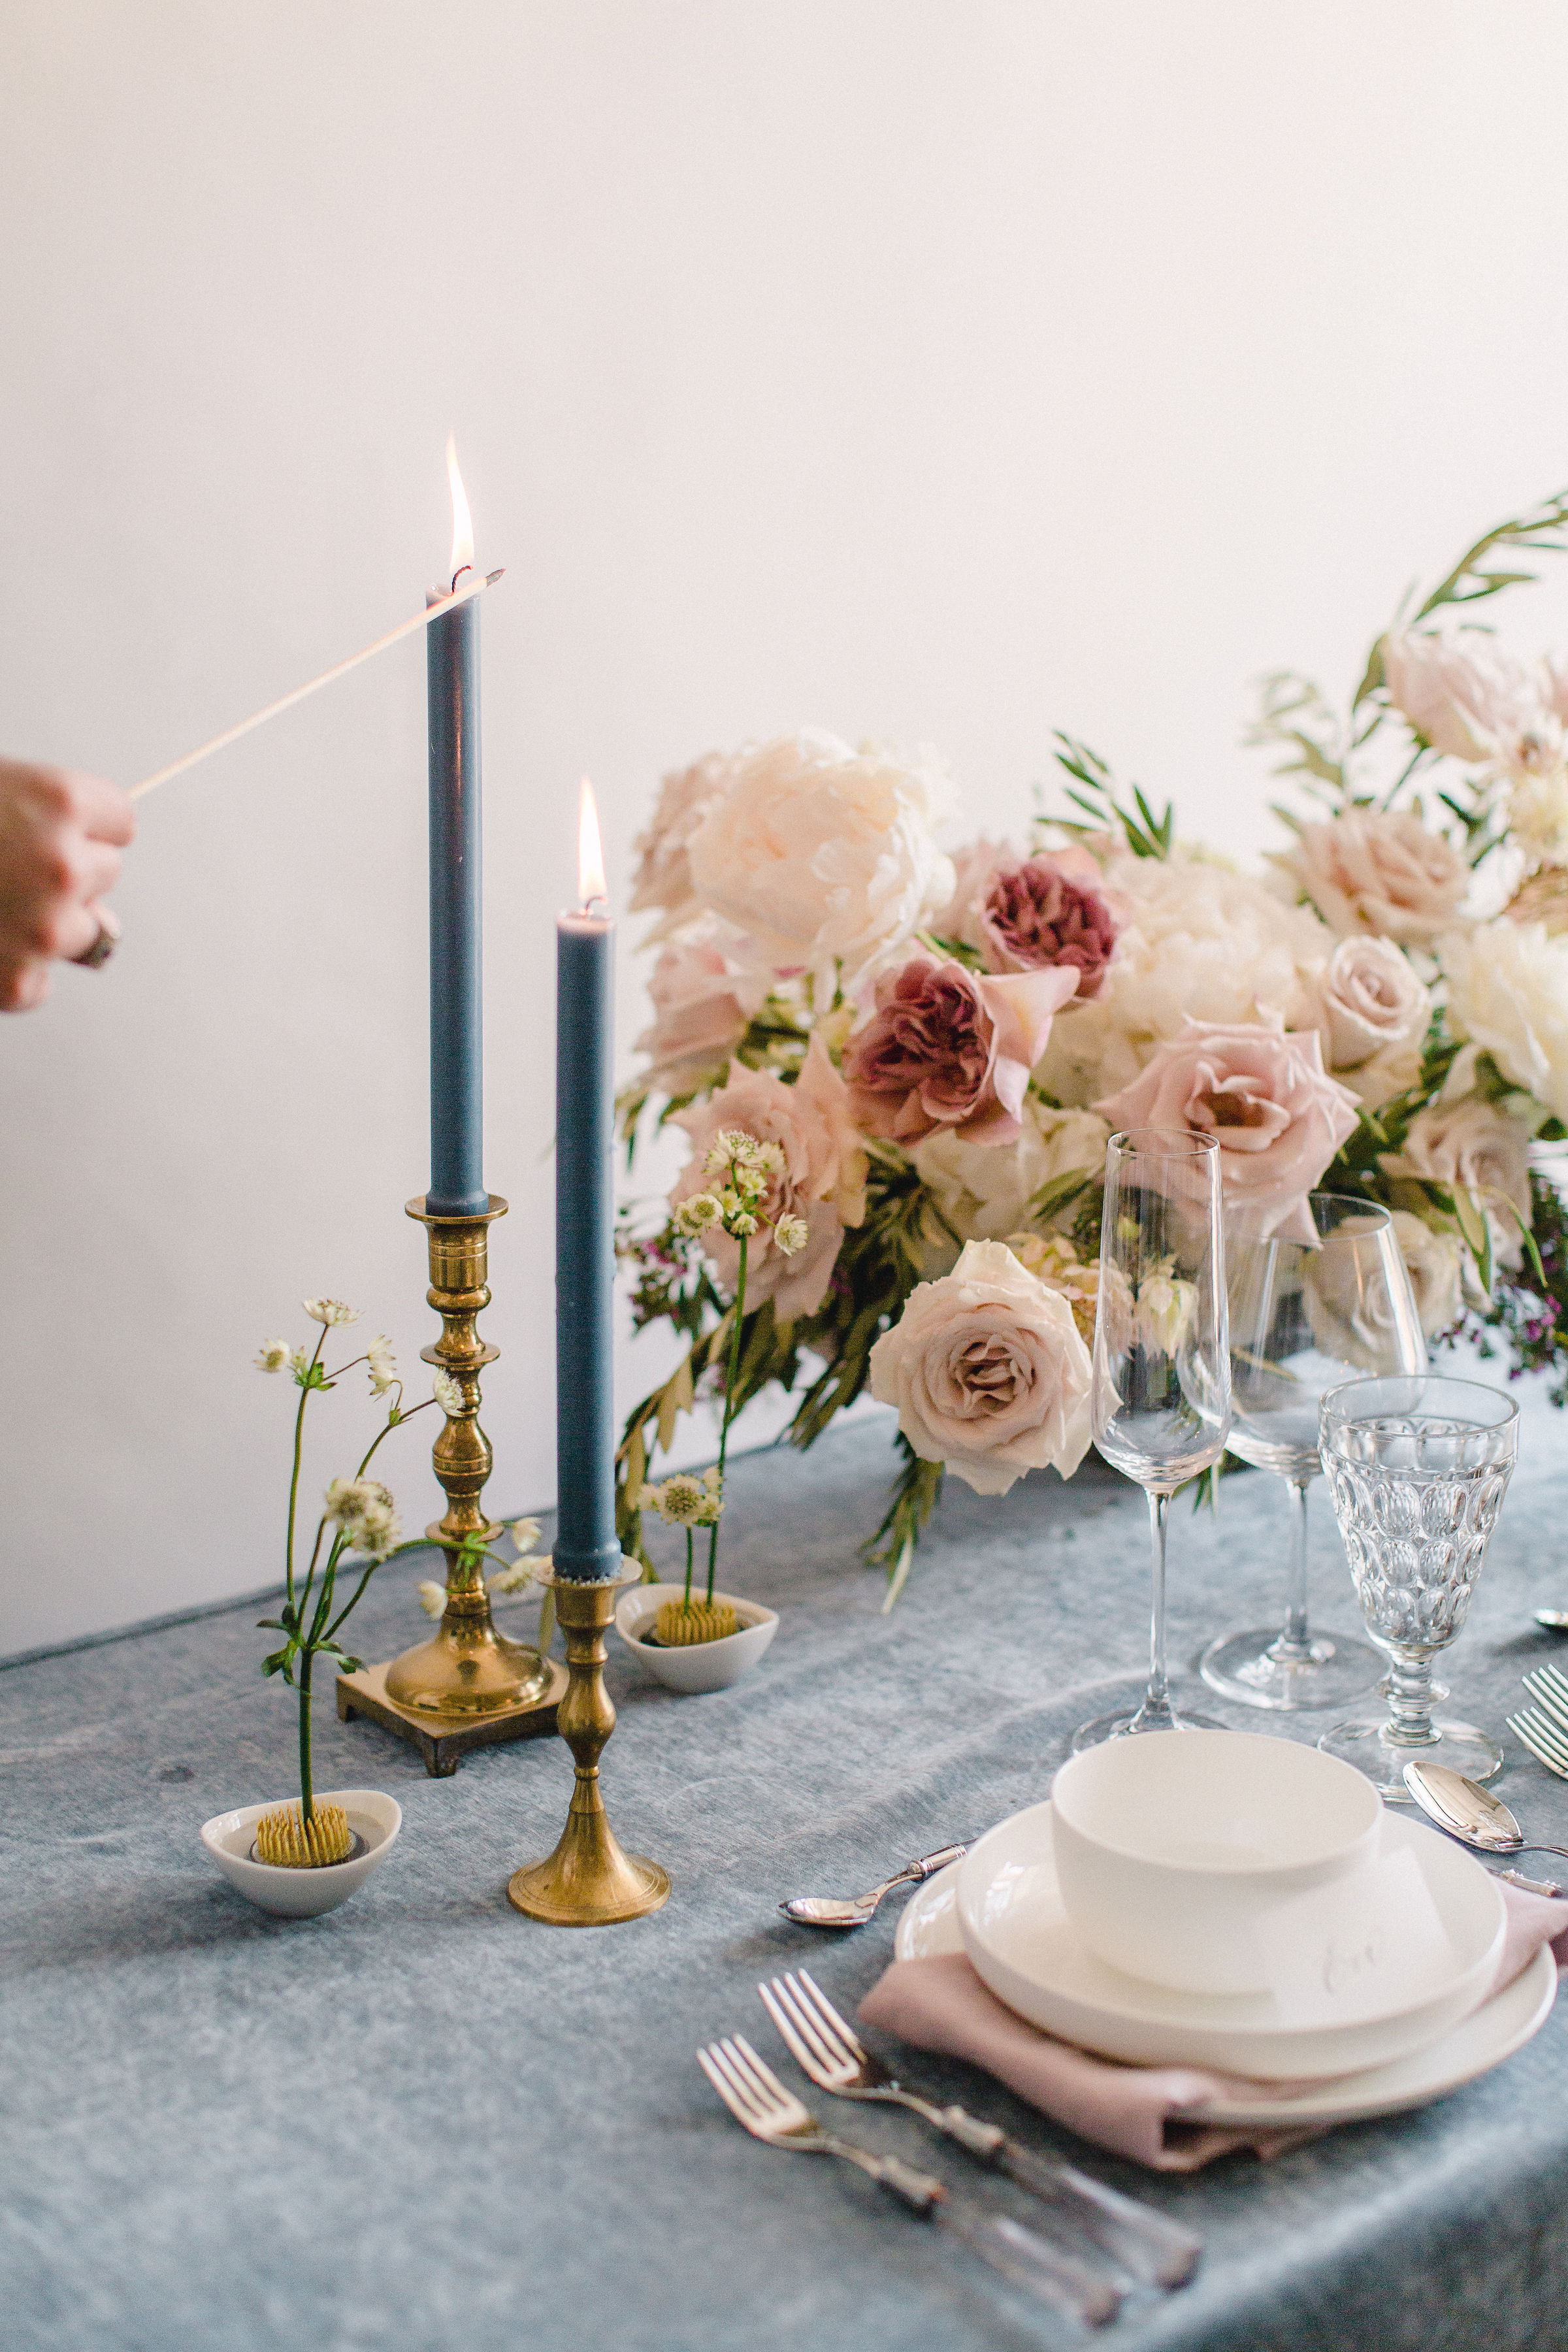 Taper candles and floral frogs make for a romantic table setting. Houston, TX. Floral & Event Design by Maxit Flower Design, Photography:  Alicia Yarrish